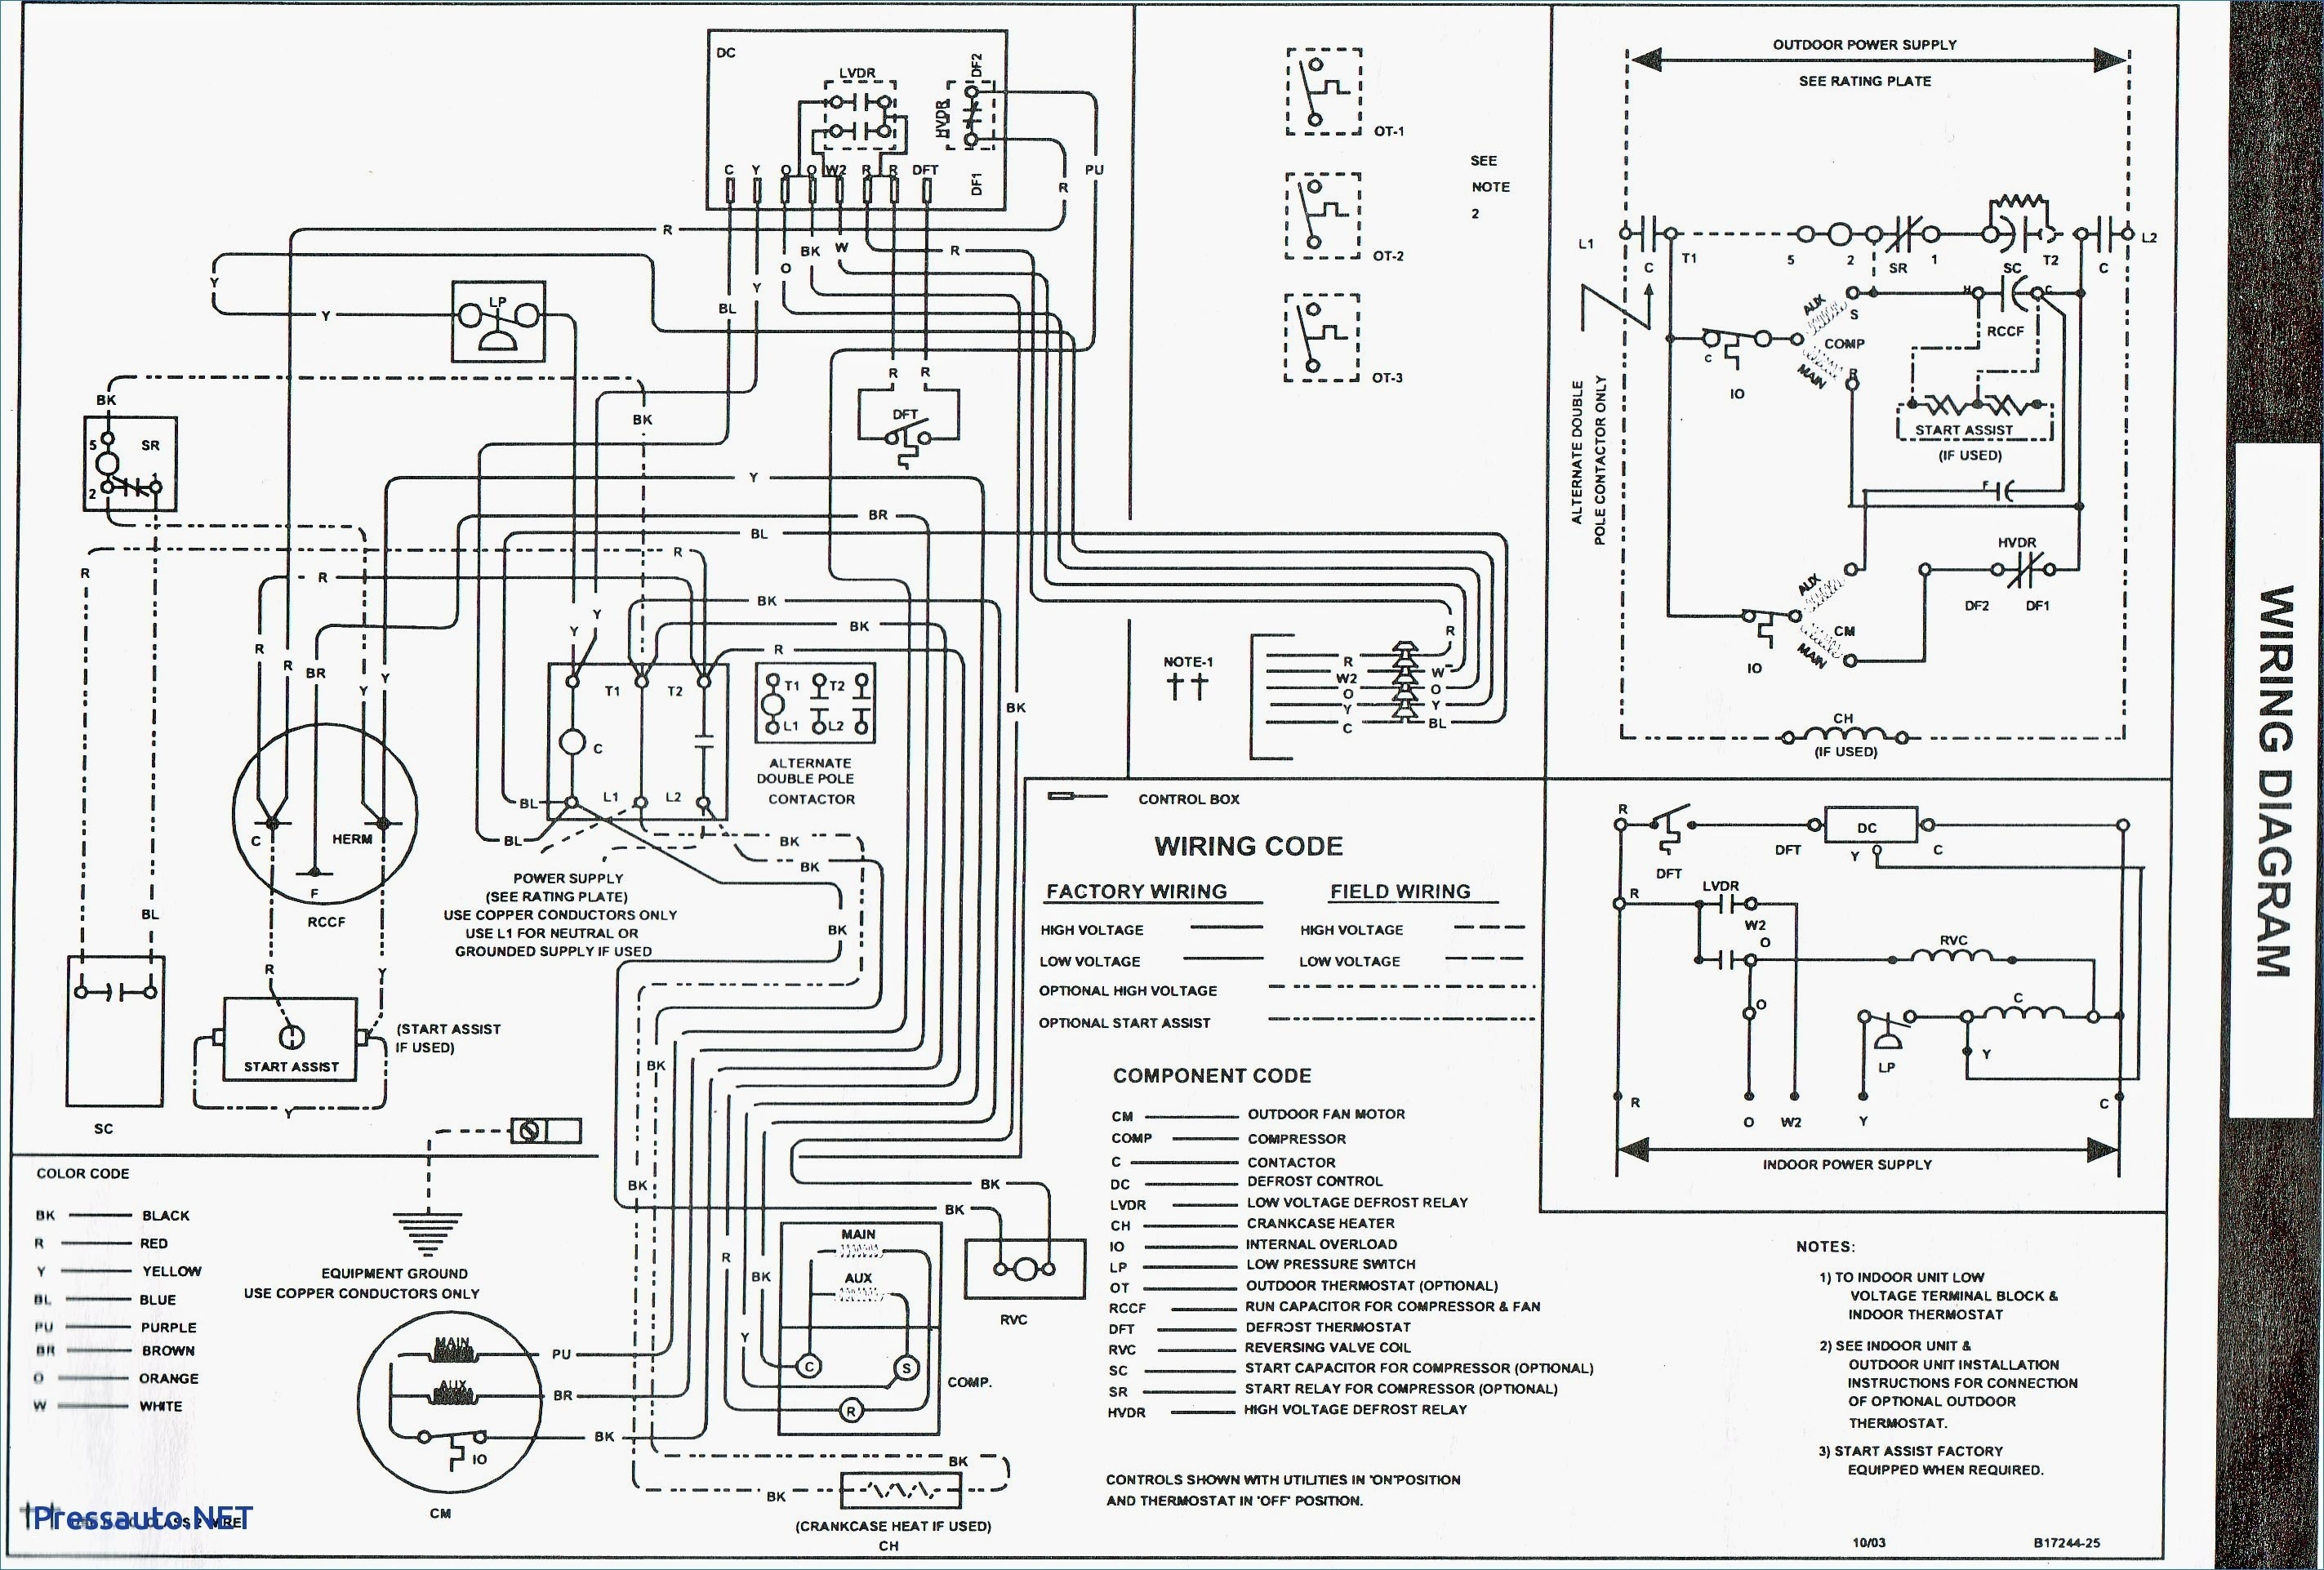 goodman gas furnace thermostat wiring diagram